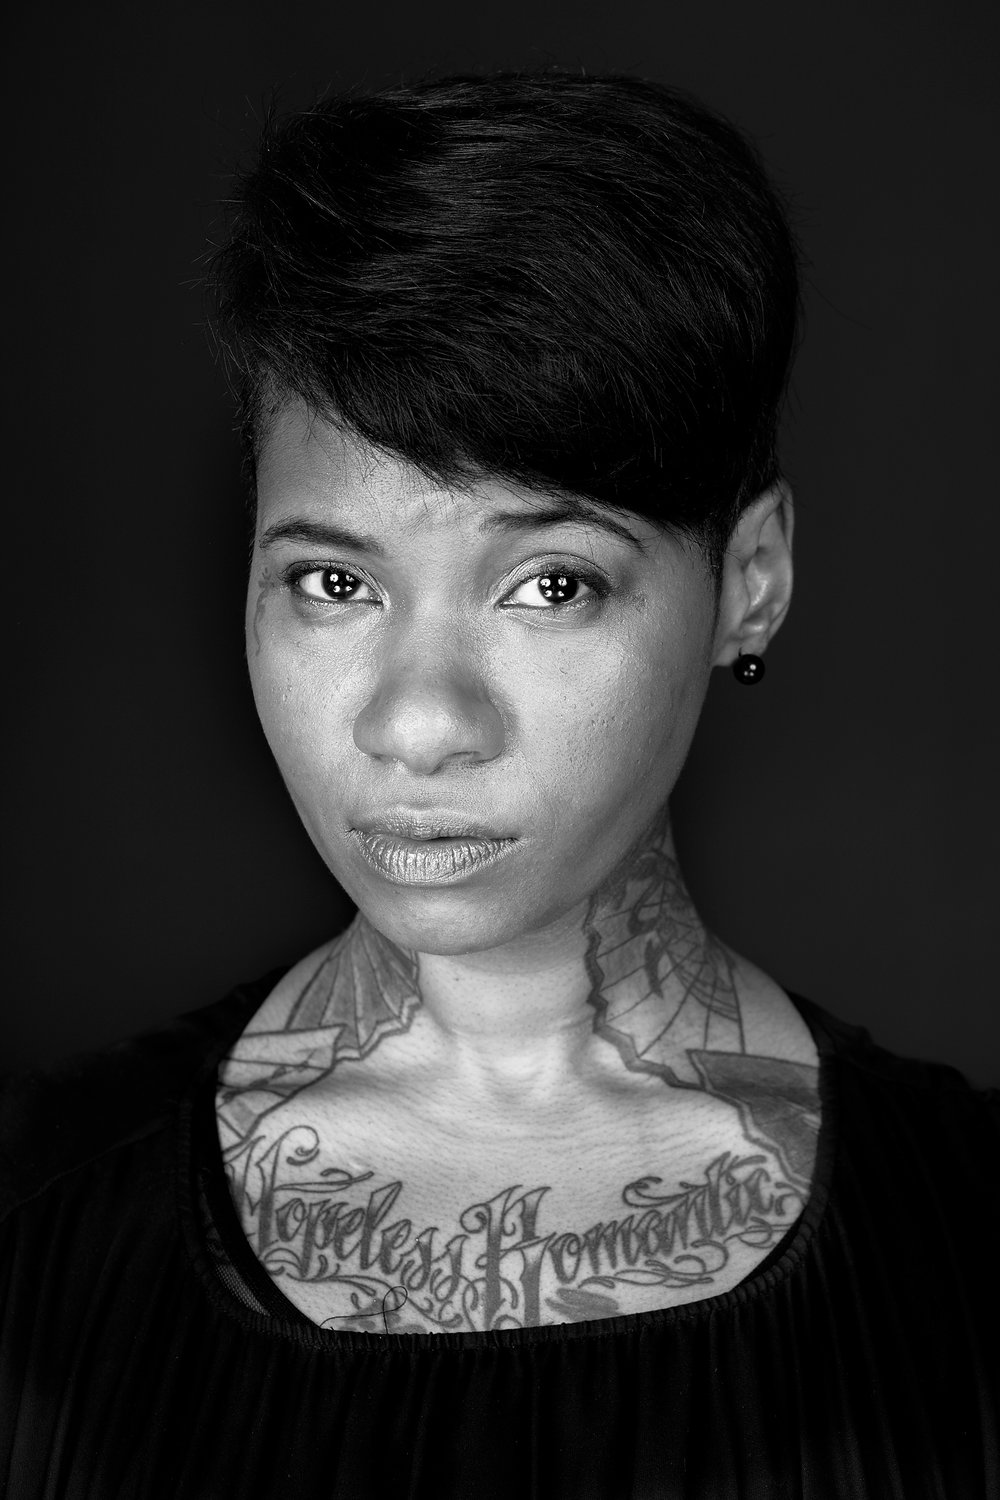 Got a Girl Crush On: Jean Grae        Nikola Tamindzic  ,  Jean Grae  (for  Jezebel 25 )     South African-born and New York-bred,  Jean Grae  is widely regarded as one of the most underrated MCs in the game. Coming up in the mid-'90s in the hip hop group Natural Resource, Grae later struggled as a solo artist to find her footing in a rap landscape that was overpopulated with hyper-sexualized female artists. Refusing to assimilate, Grae has truly epitomized the spirt of an independent artist. At her core, she's an innovator, with raw and incredibly personal lyrics that touch on the kind of shared female experiences that no other rapper has dared explore, like the complexity of mother/daughter relationships.   — Tracie Egan Morrissey,  Jezebel.com           (via  homeofthevain )